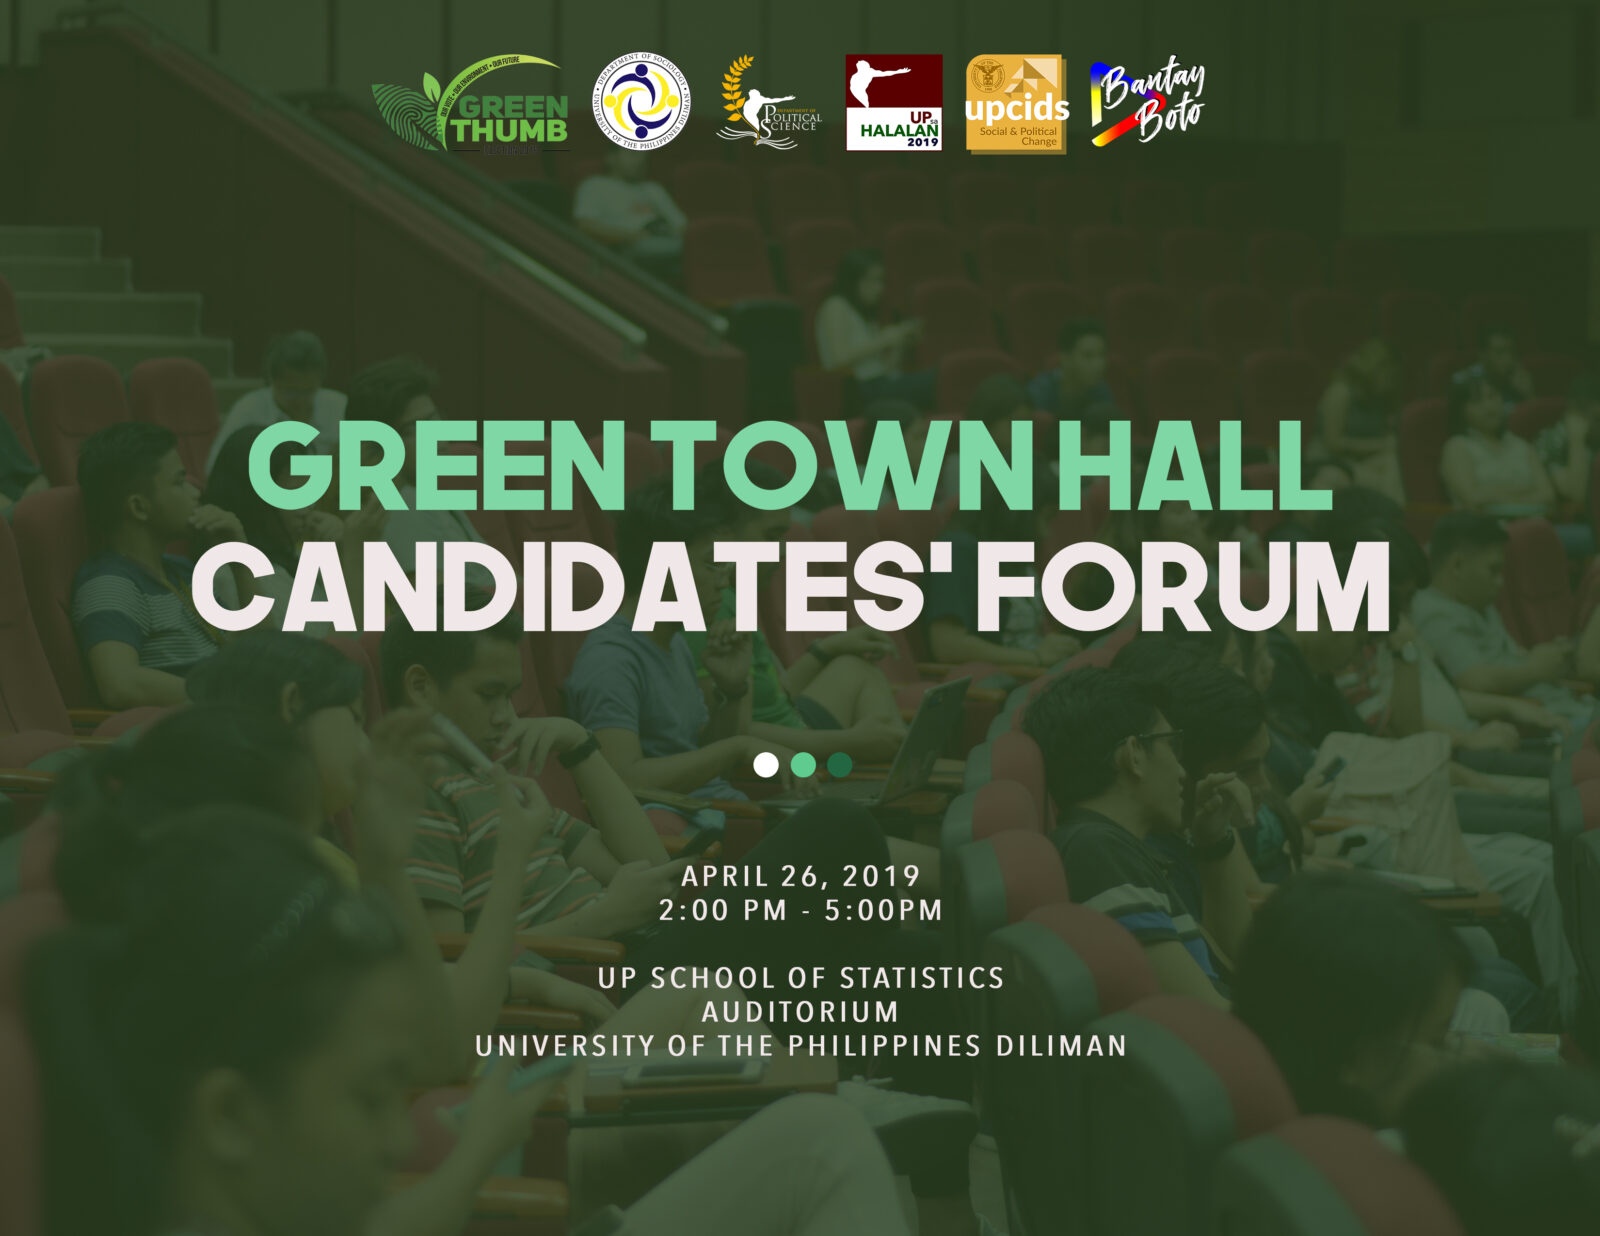 Green Town Hall Candidates' Forum